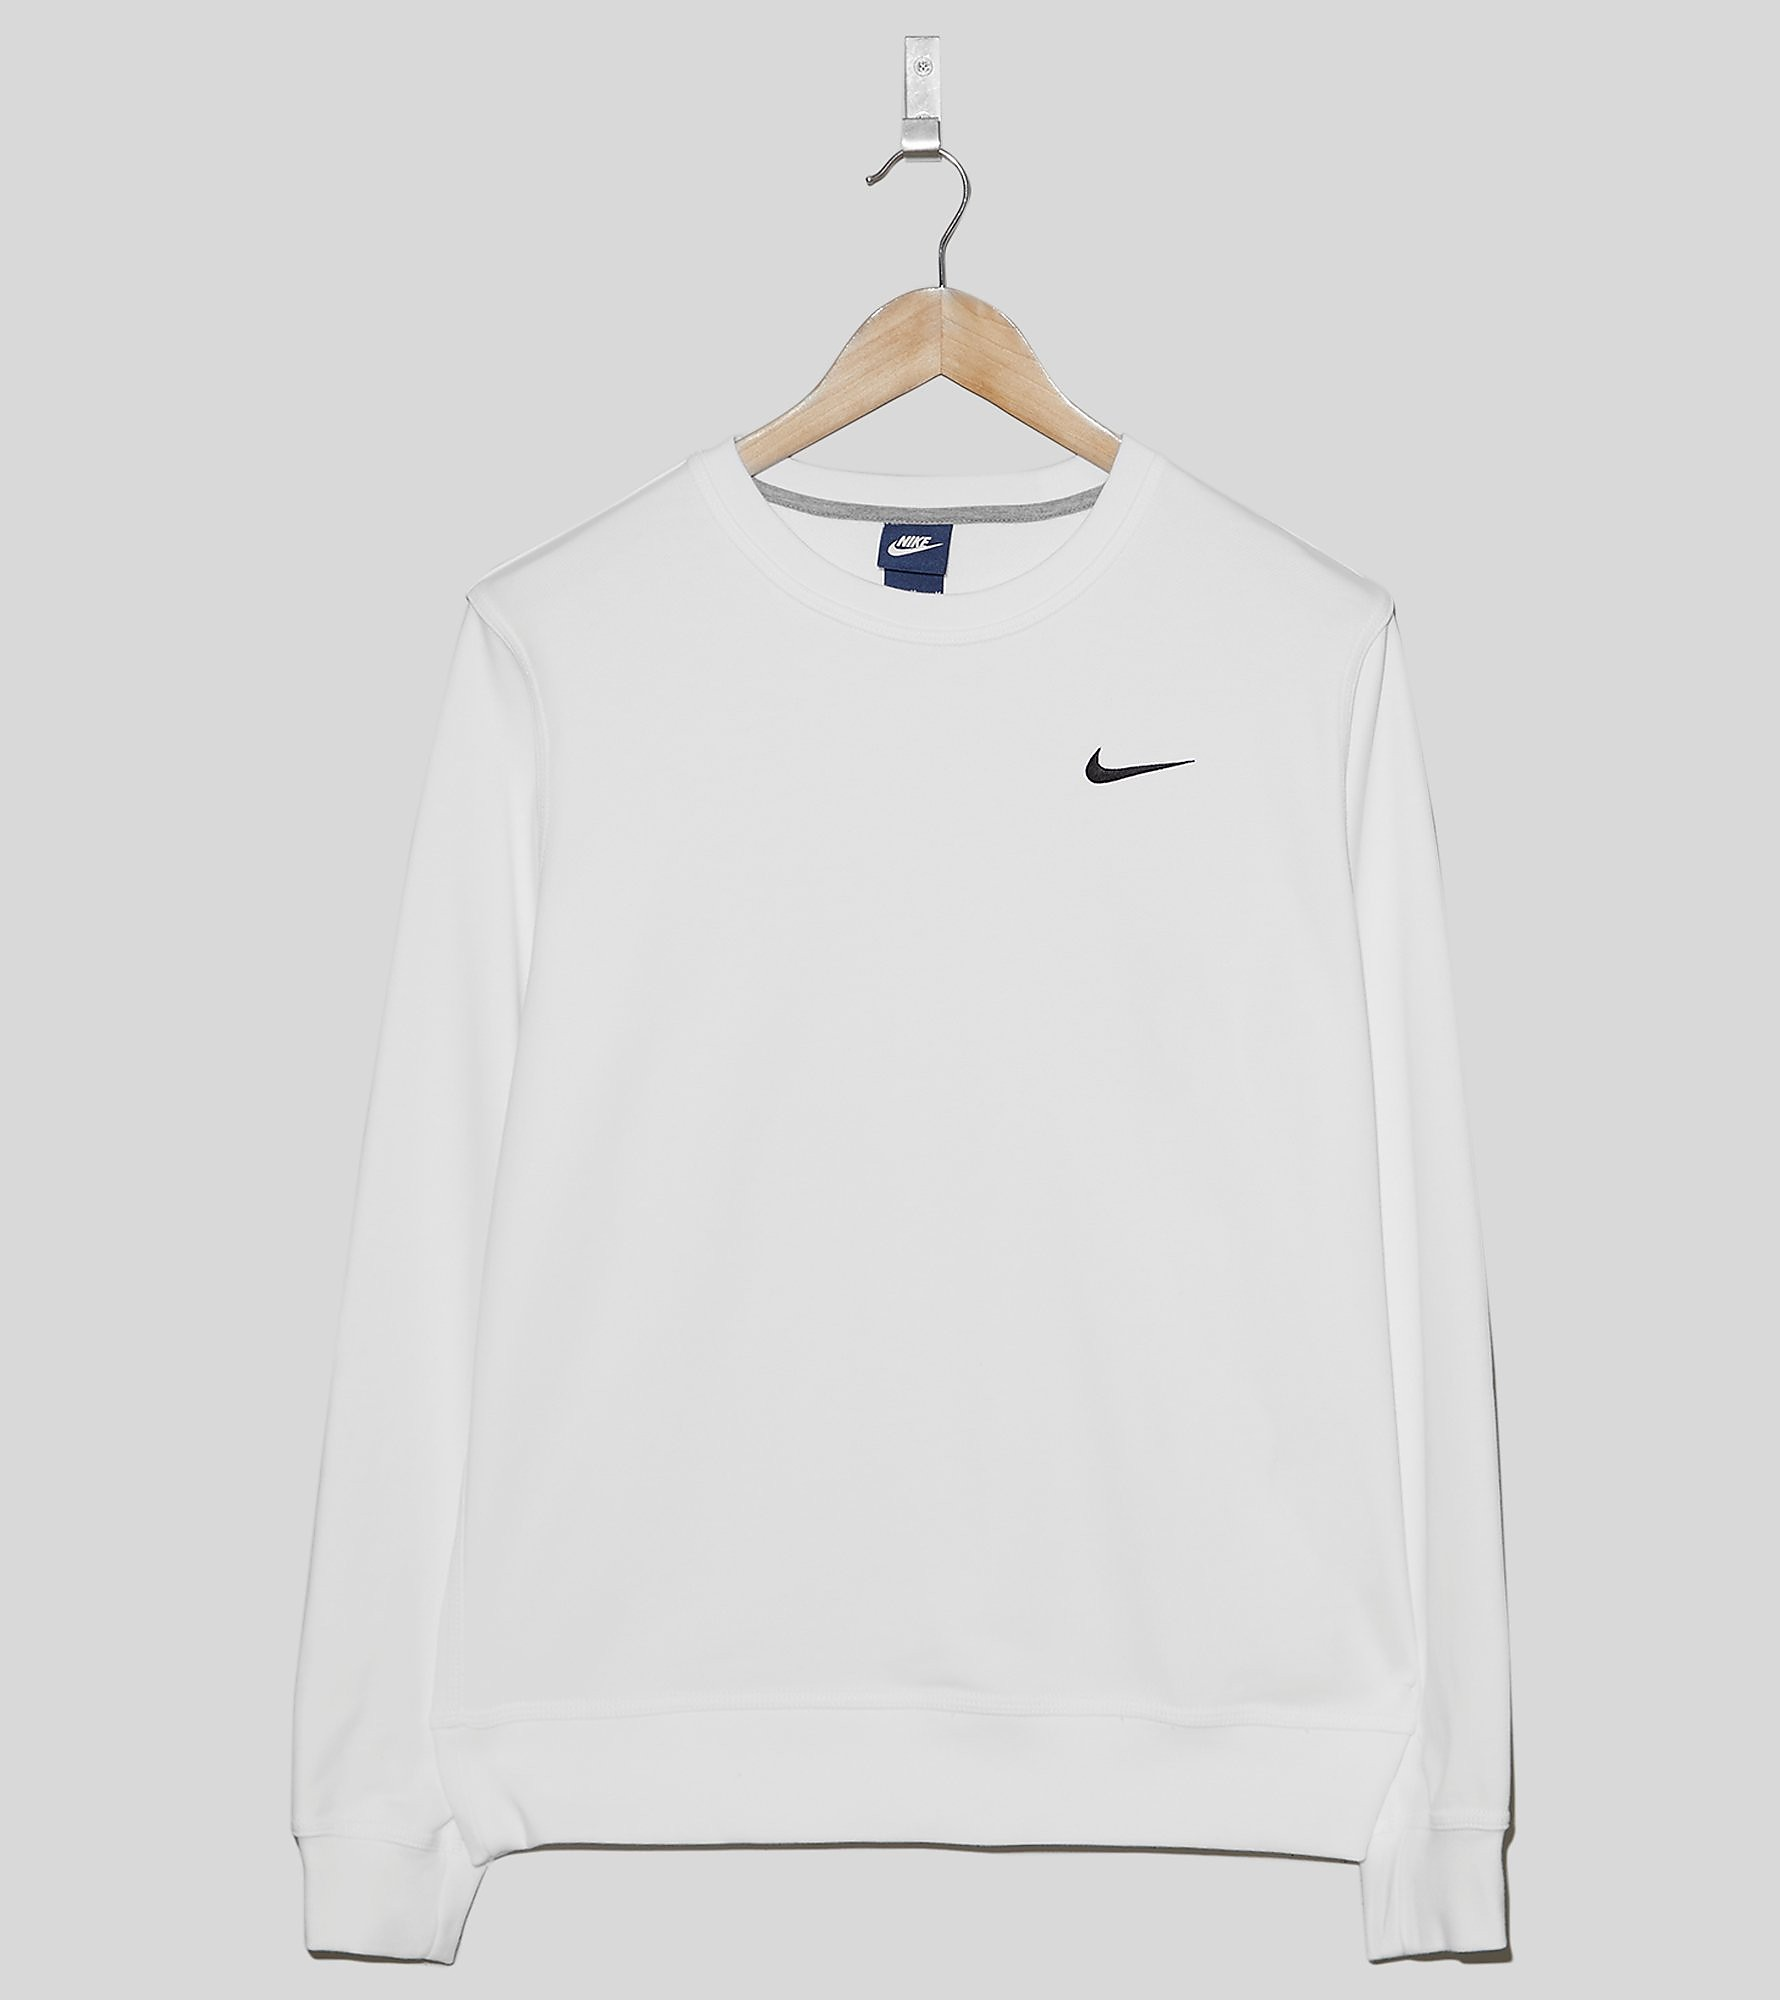 Nike Blue Label Crew Sweatshirt